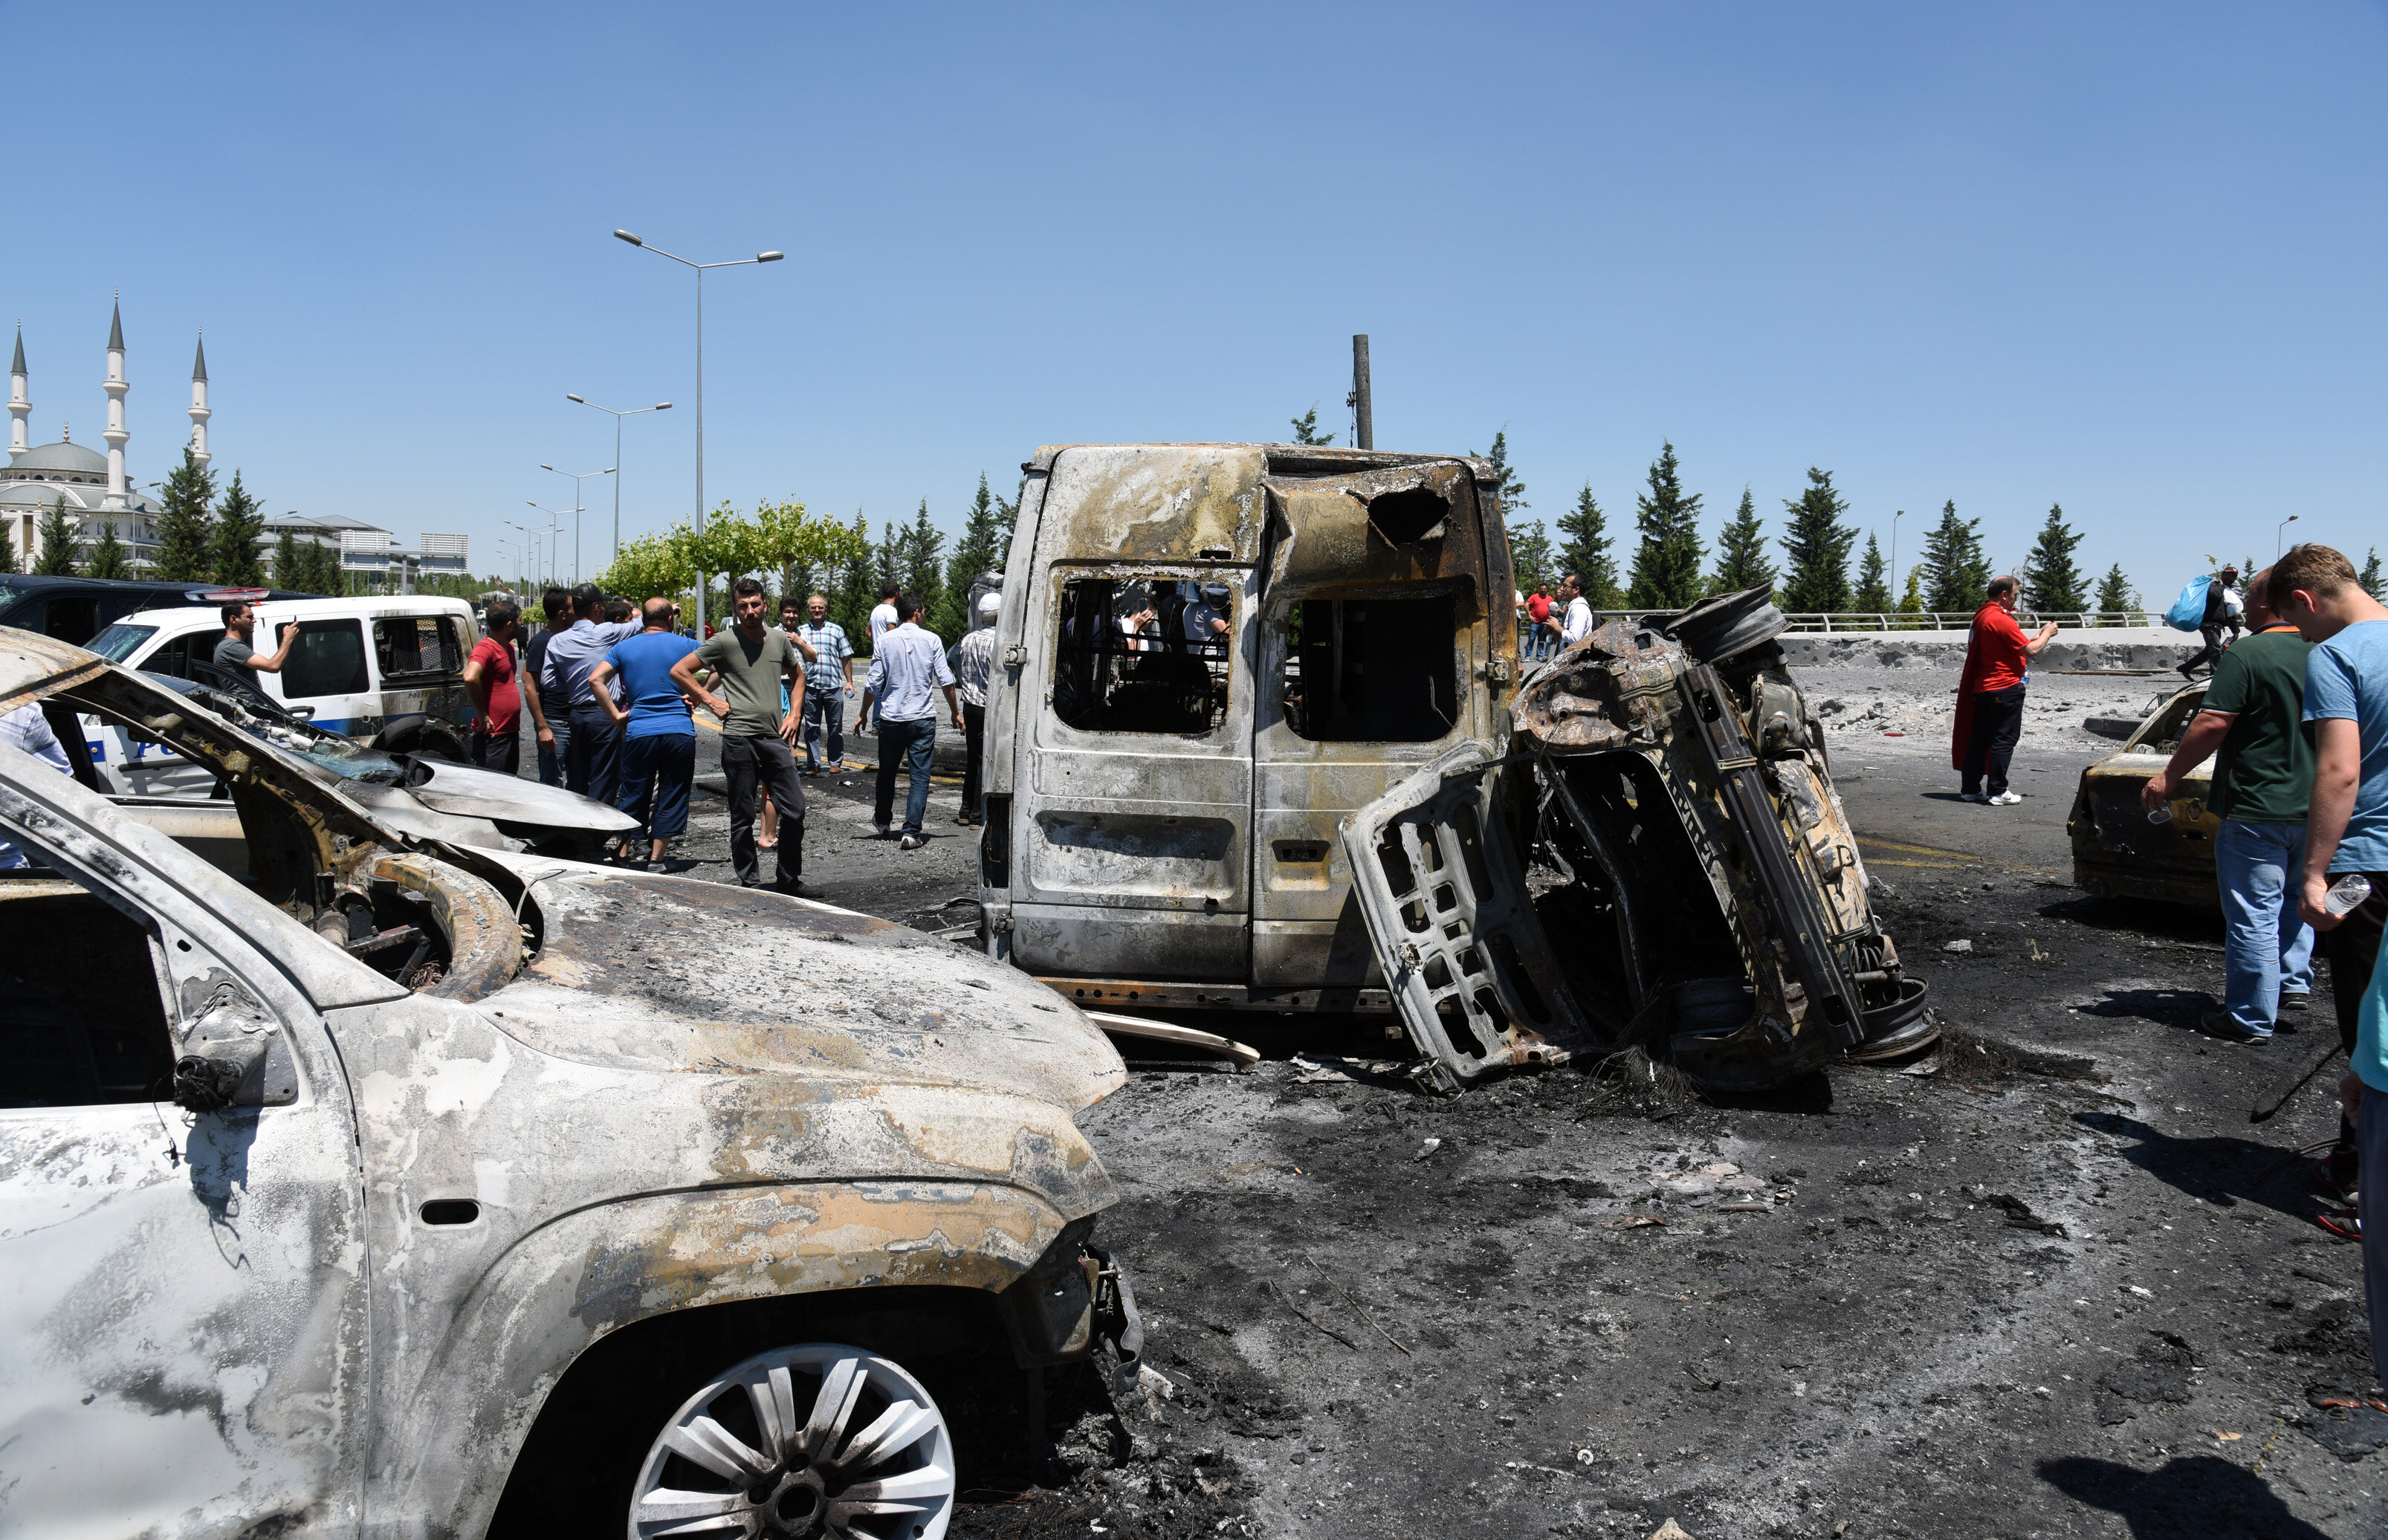 It was only revealed how much damage the bombs dropped on the Presidential Palace complex caused come morning.